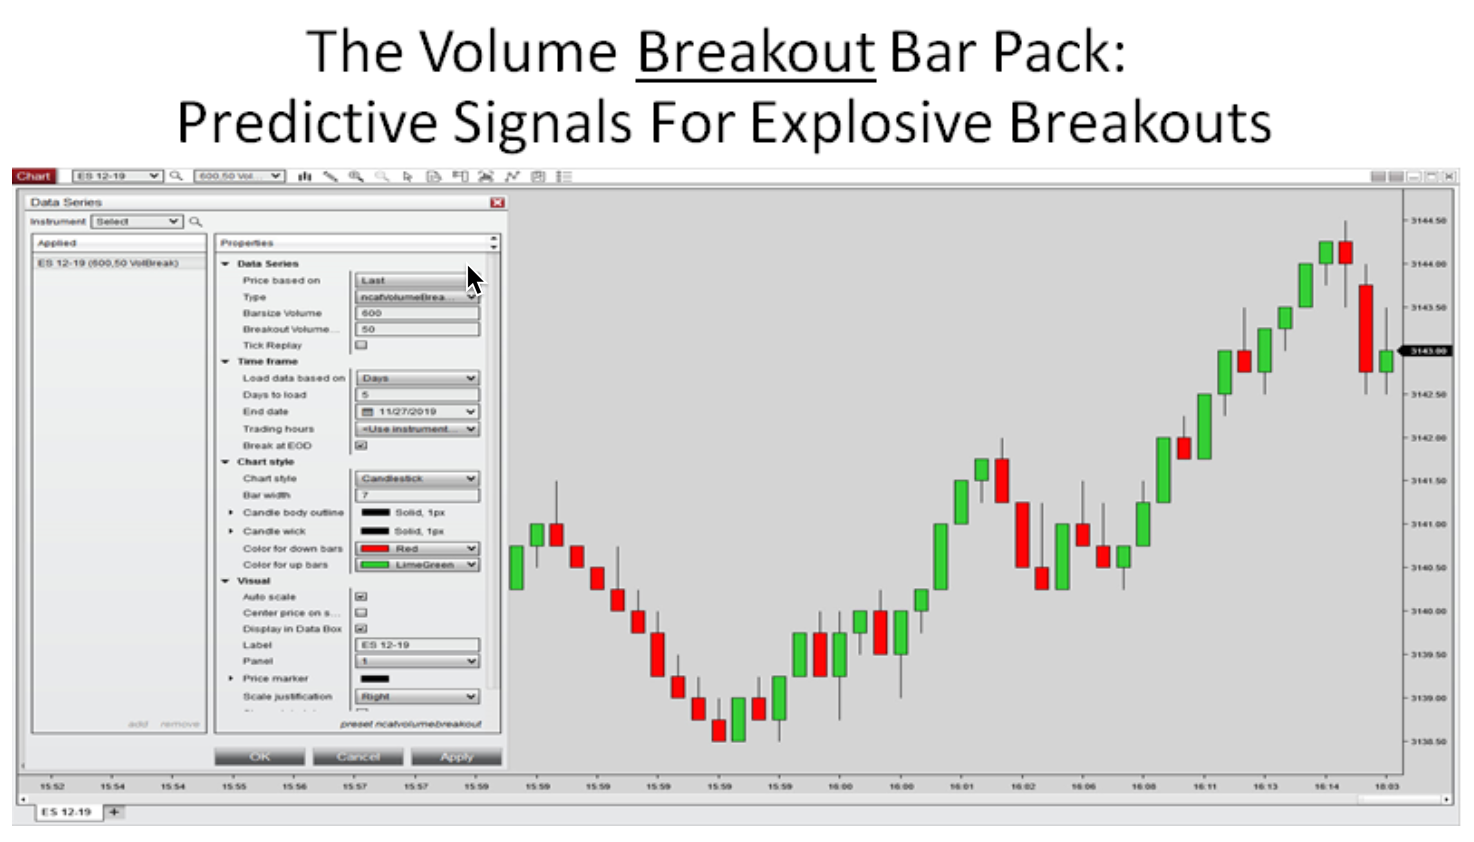 The Volume Breakout Bar Pack